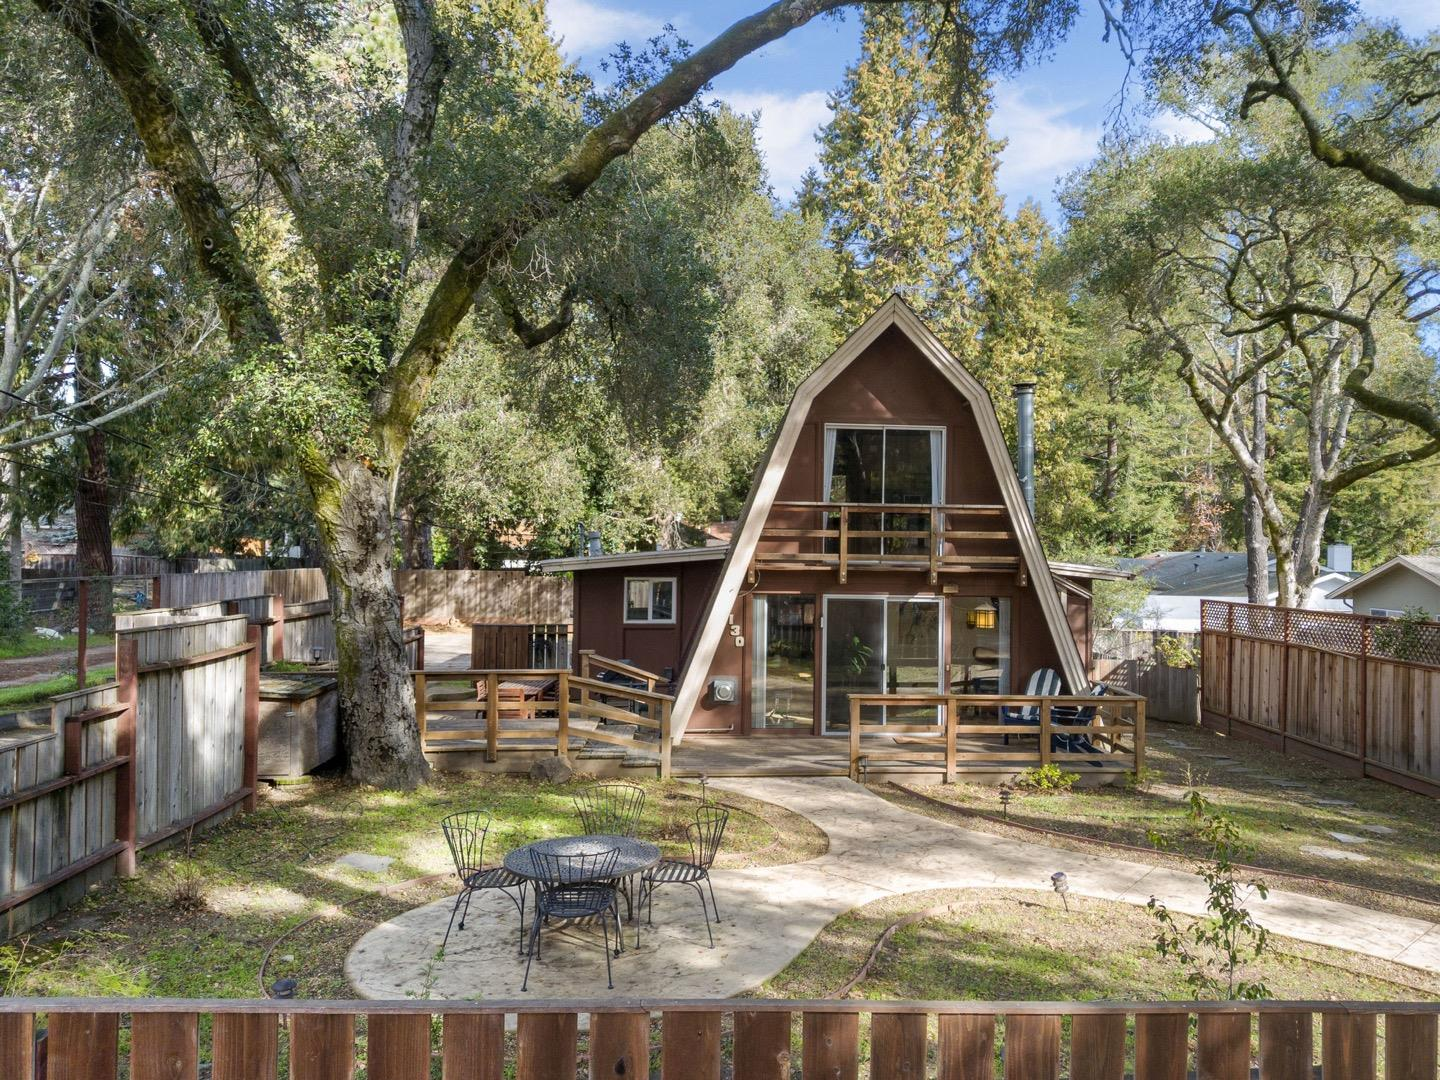 This unique A-frame home is as good as it gets. Set on a quiet, tree-lined street, this adorable starter home features two master suites, an open floor plan with exposed wood beam ceilings, and a cozy, wood-burning stove. There is an upstairs loft area, currently set up as a den with a daybed for guests. Perfectly situated, this home has mountain biking and hiking trails at its doorstep and access to some of the best beaches in the state.  An extra long driveway is perfect for parking oversized vehicles. Easy commute to San Francisco or the Bay Area. Highly walkable neighborhood near Scotts Valley grocery stores, coffee shops, restaurants, and parks. The house sits nestled among heritage oak trees on a level and fenced lot. In addition to the sunny front porch, there is a side-patio with a BBQ and lounge area, and a landscaped front yard with a fire-pit and raised planter boxes. The detached garage is semi-finished and makes a great exercise and workshop space.